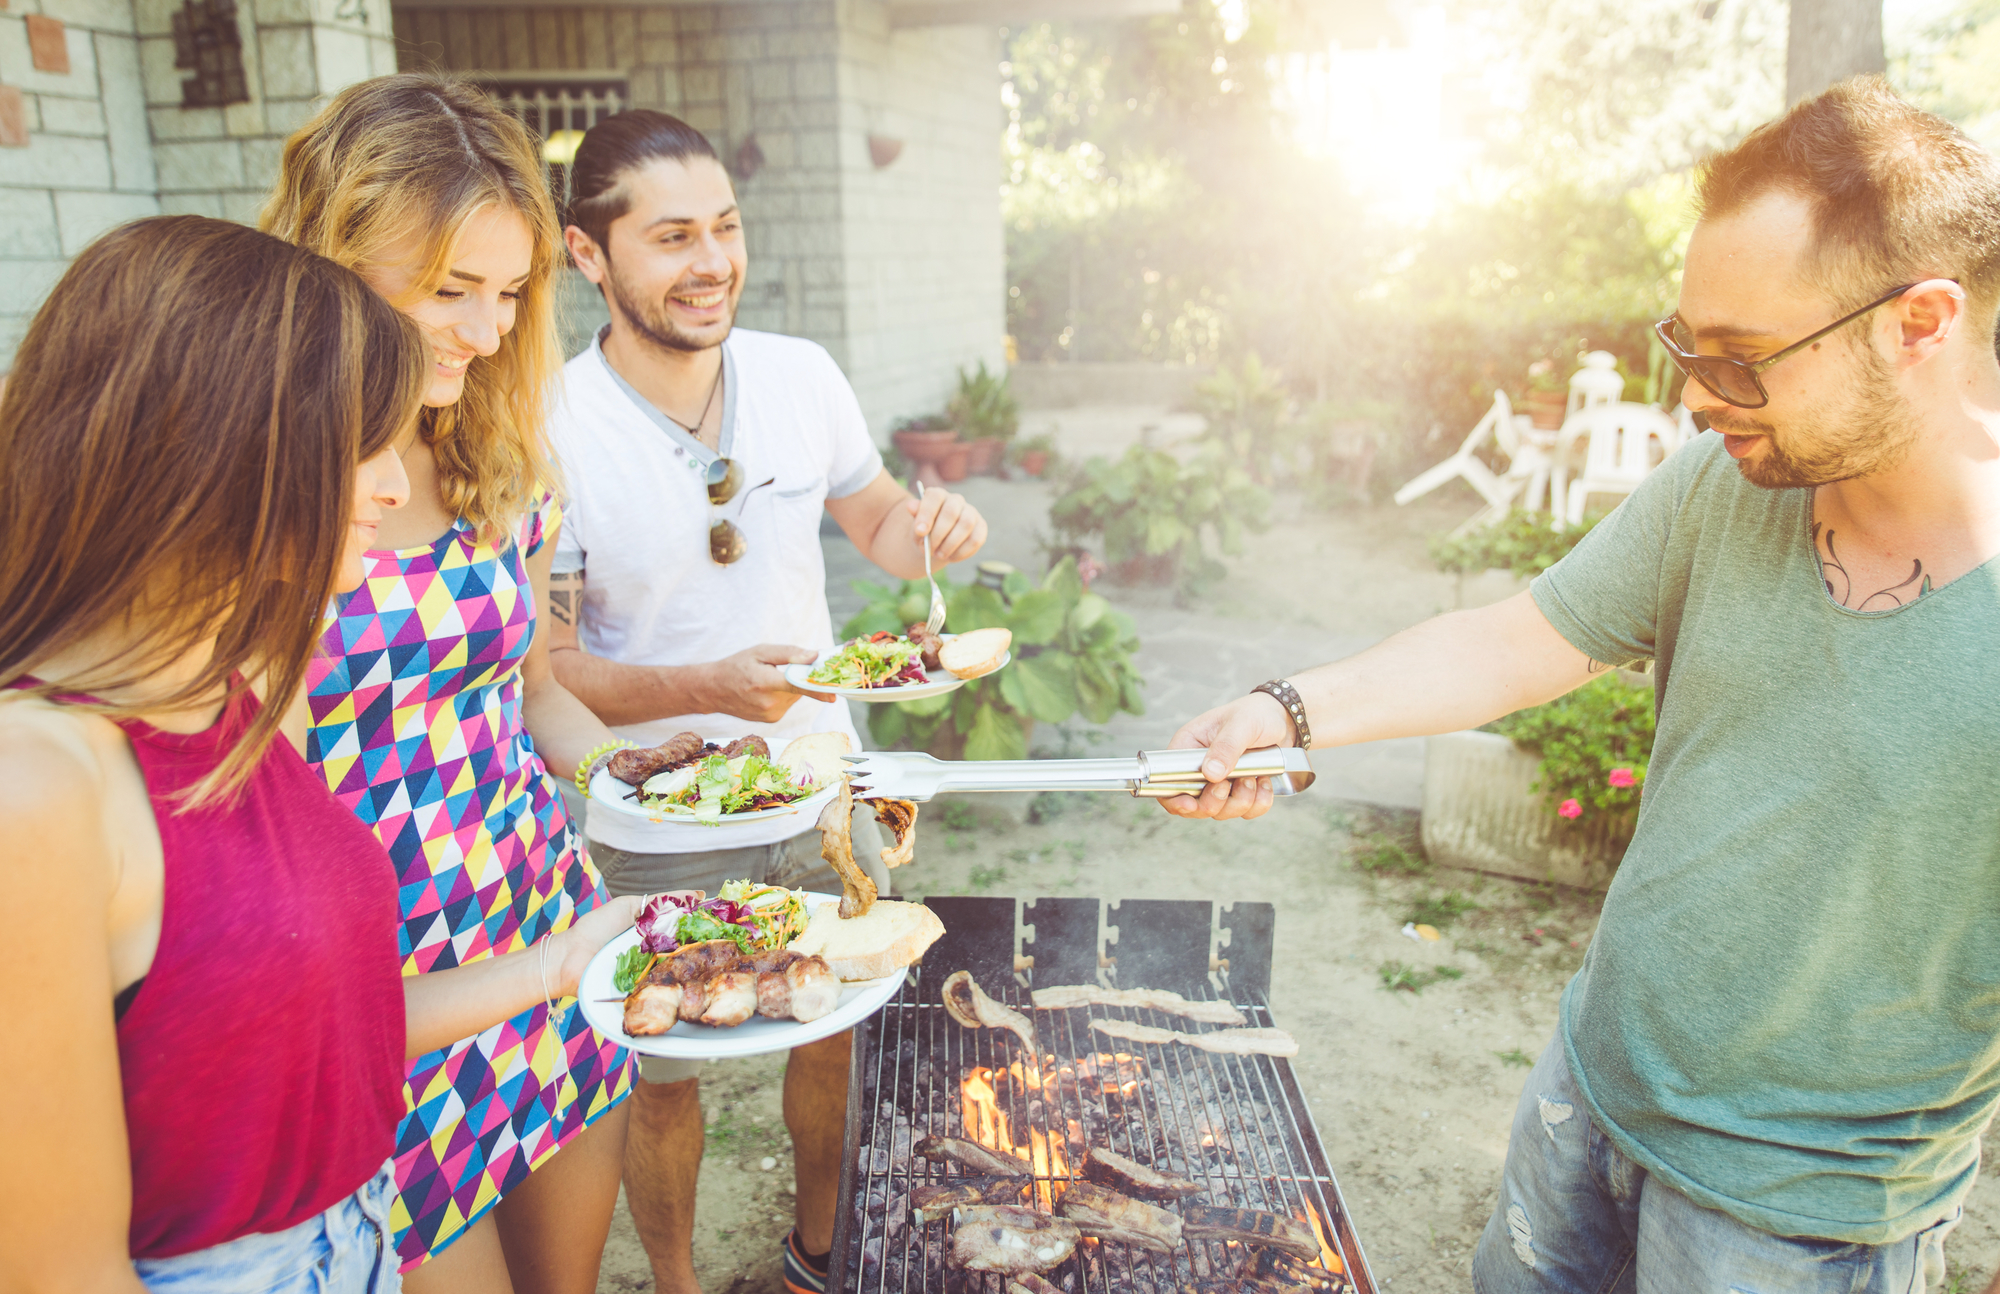 14 Tips for a Fun BBQ this Summer